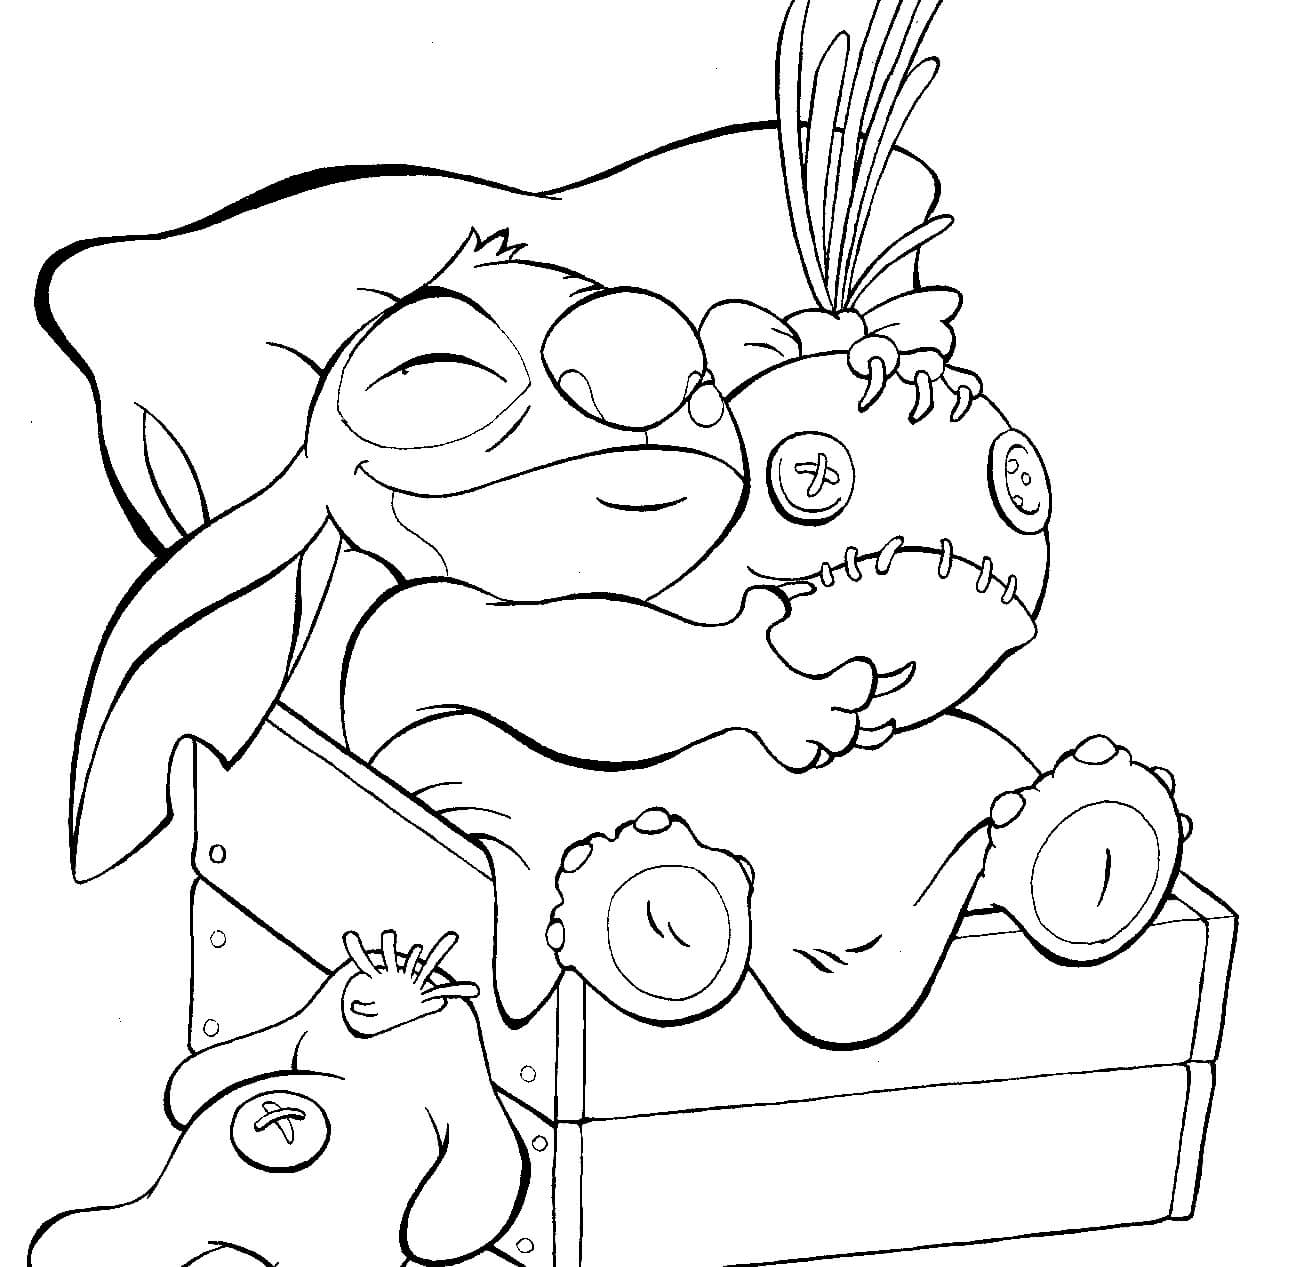 1290x1267 Lilo And Stitch Coloring Coloring Pages For Kids